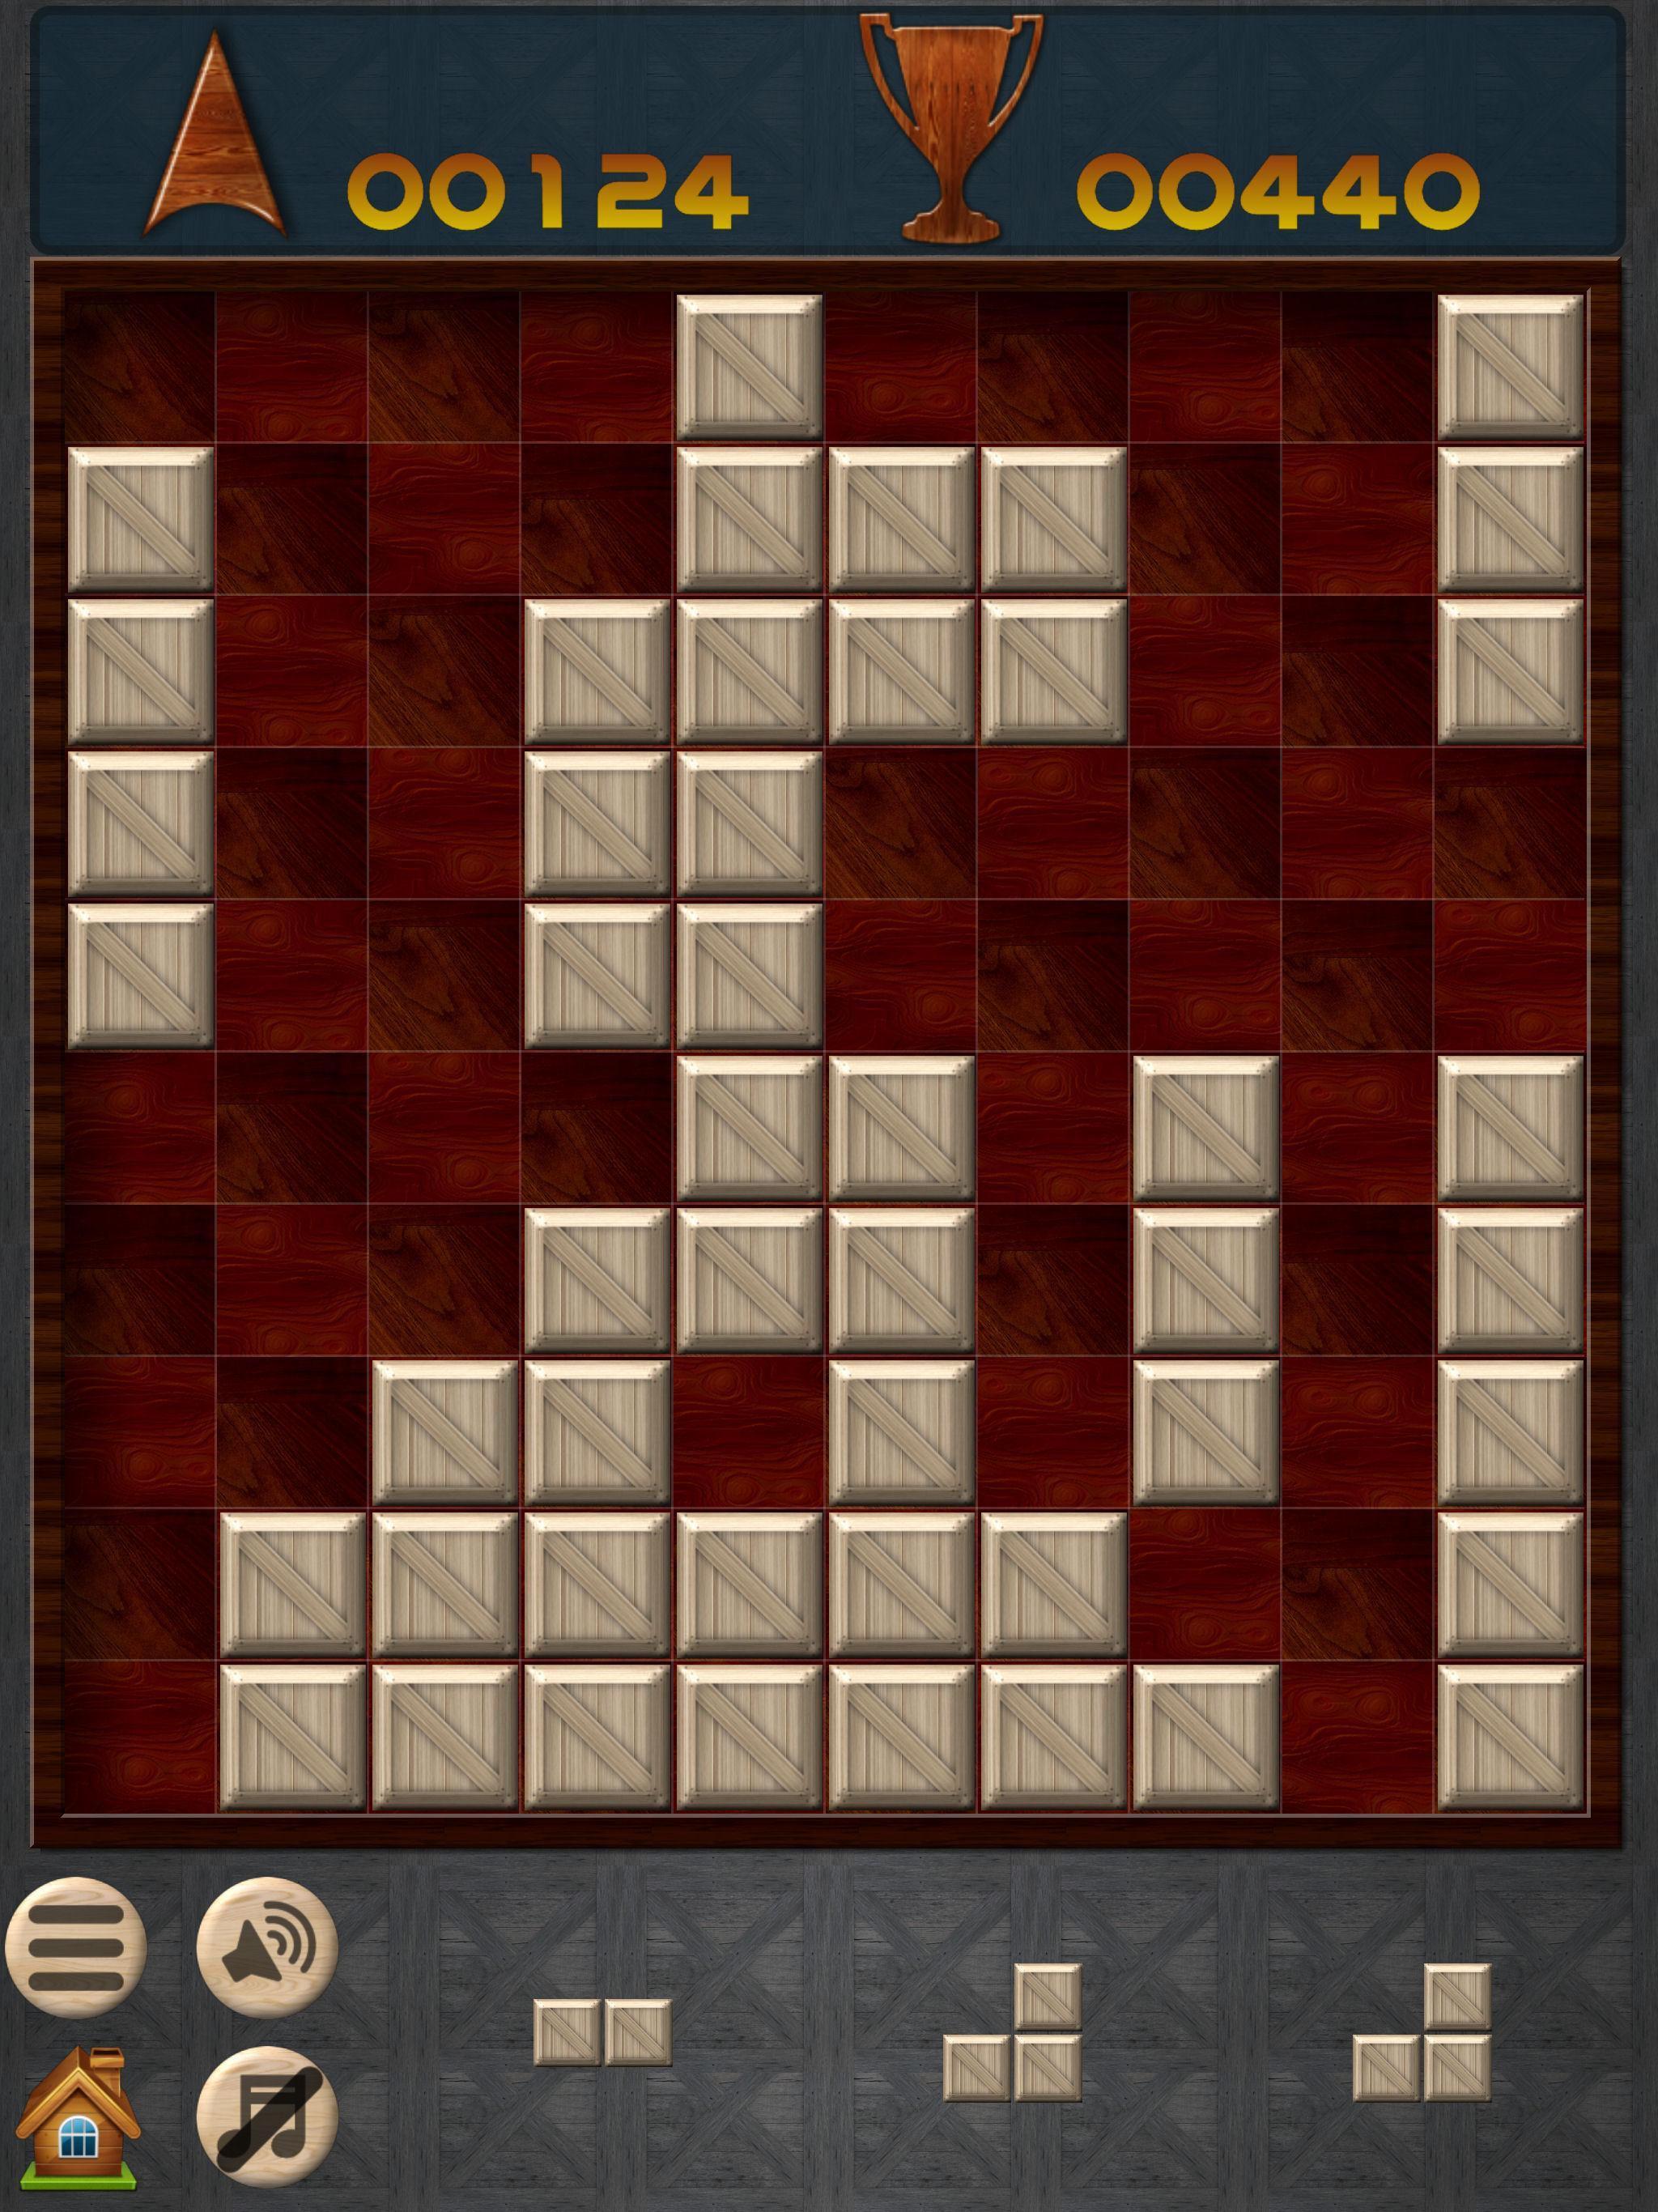 Wooden Block Puzzle Game For Android Apk Download